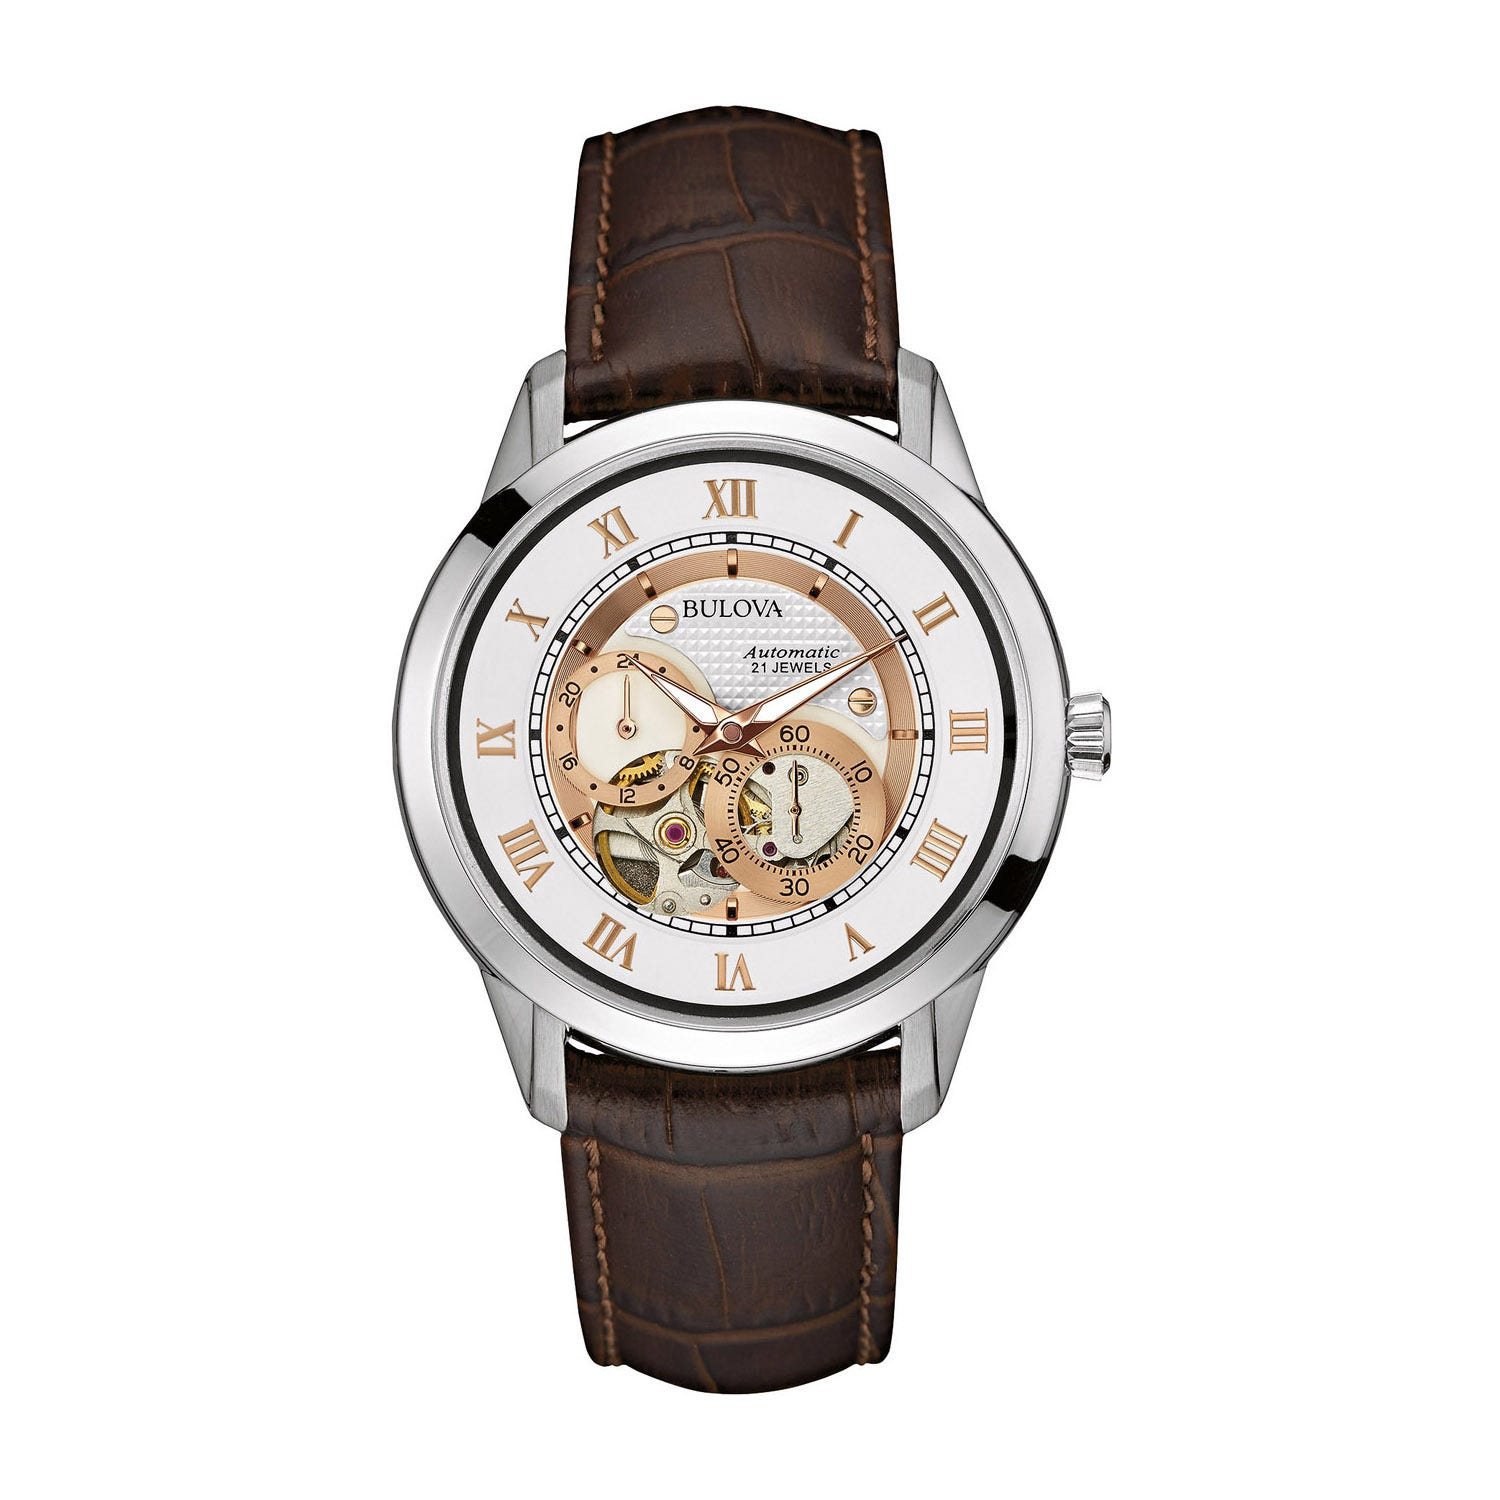 Bulova Automatic men's open dial brown leather strap watch